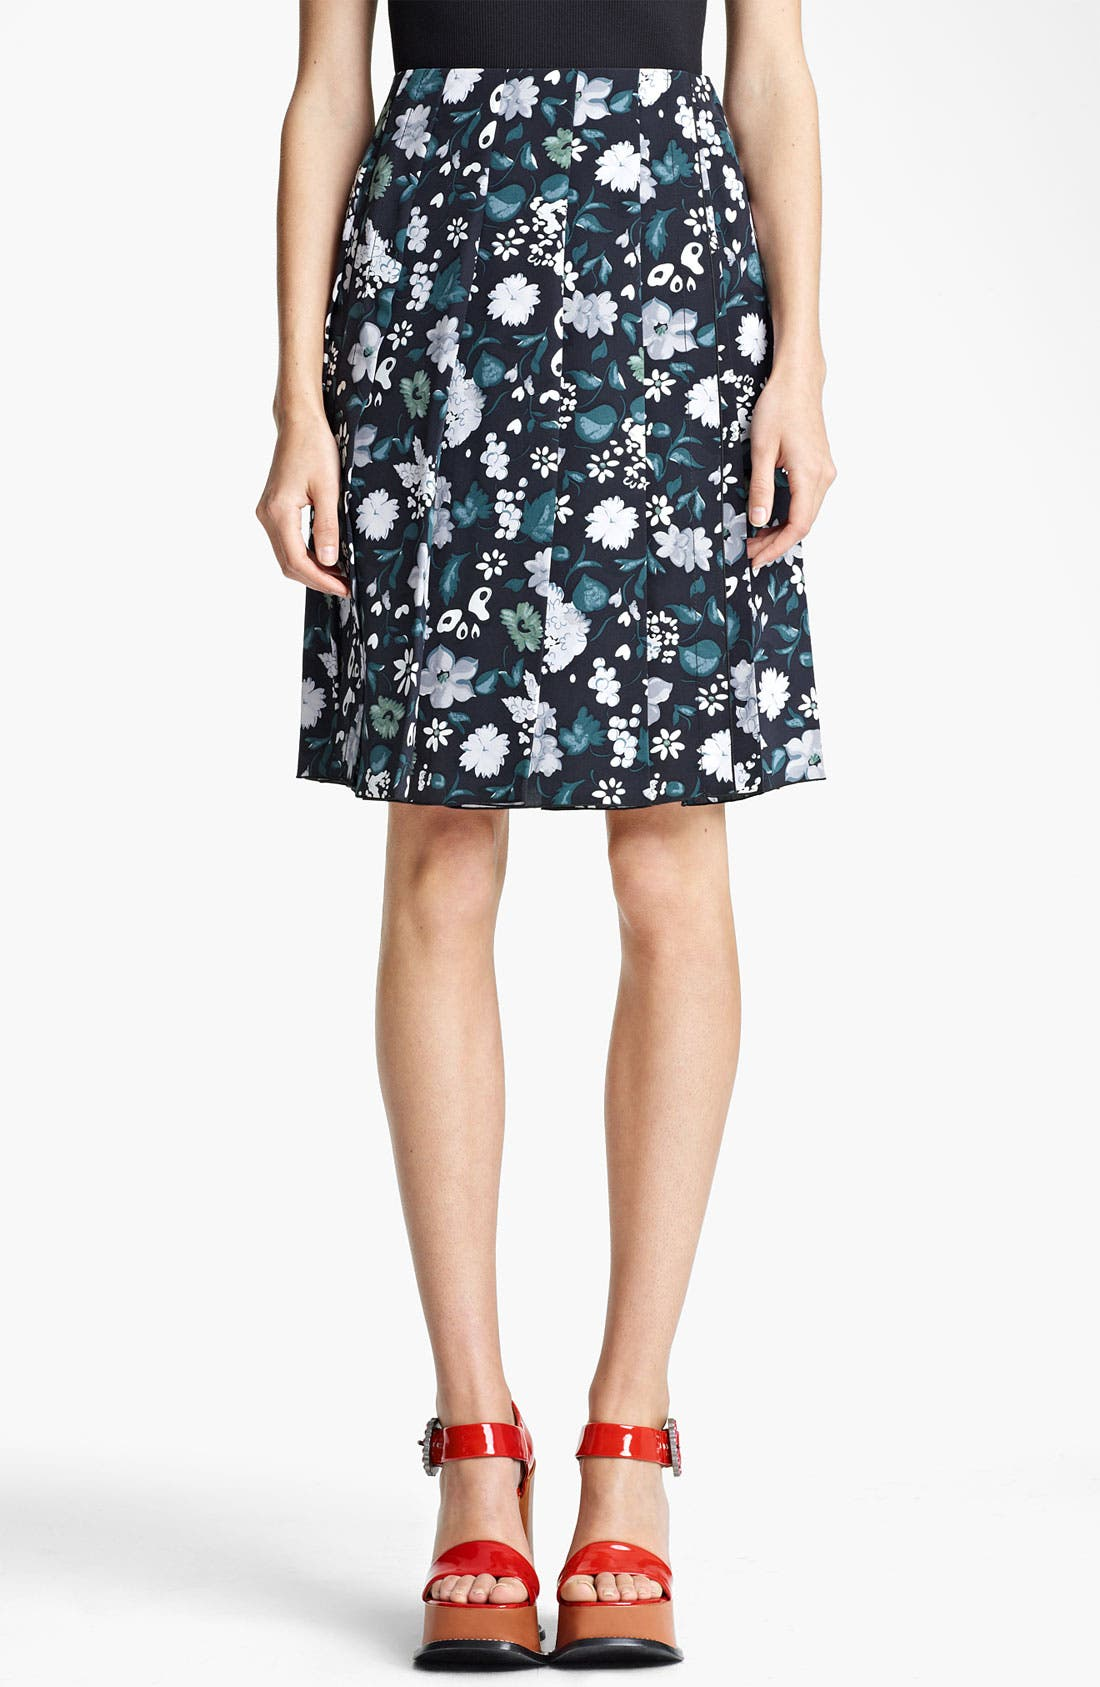 Main Image - MARC JACOBS Print Crêpe de Chine Skirt